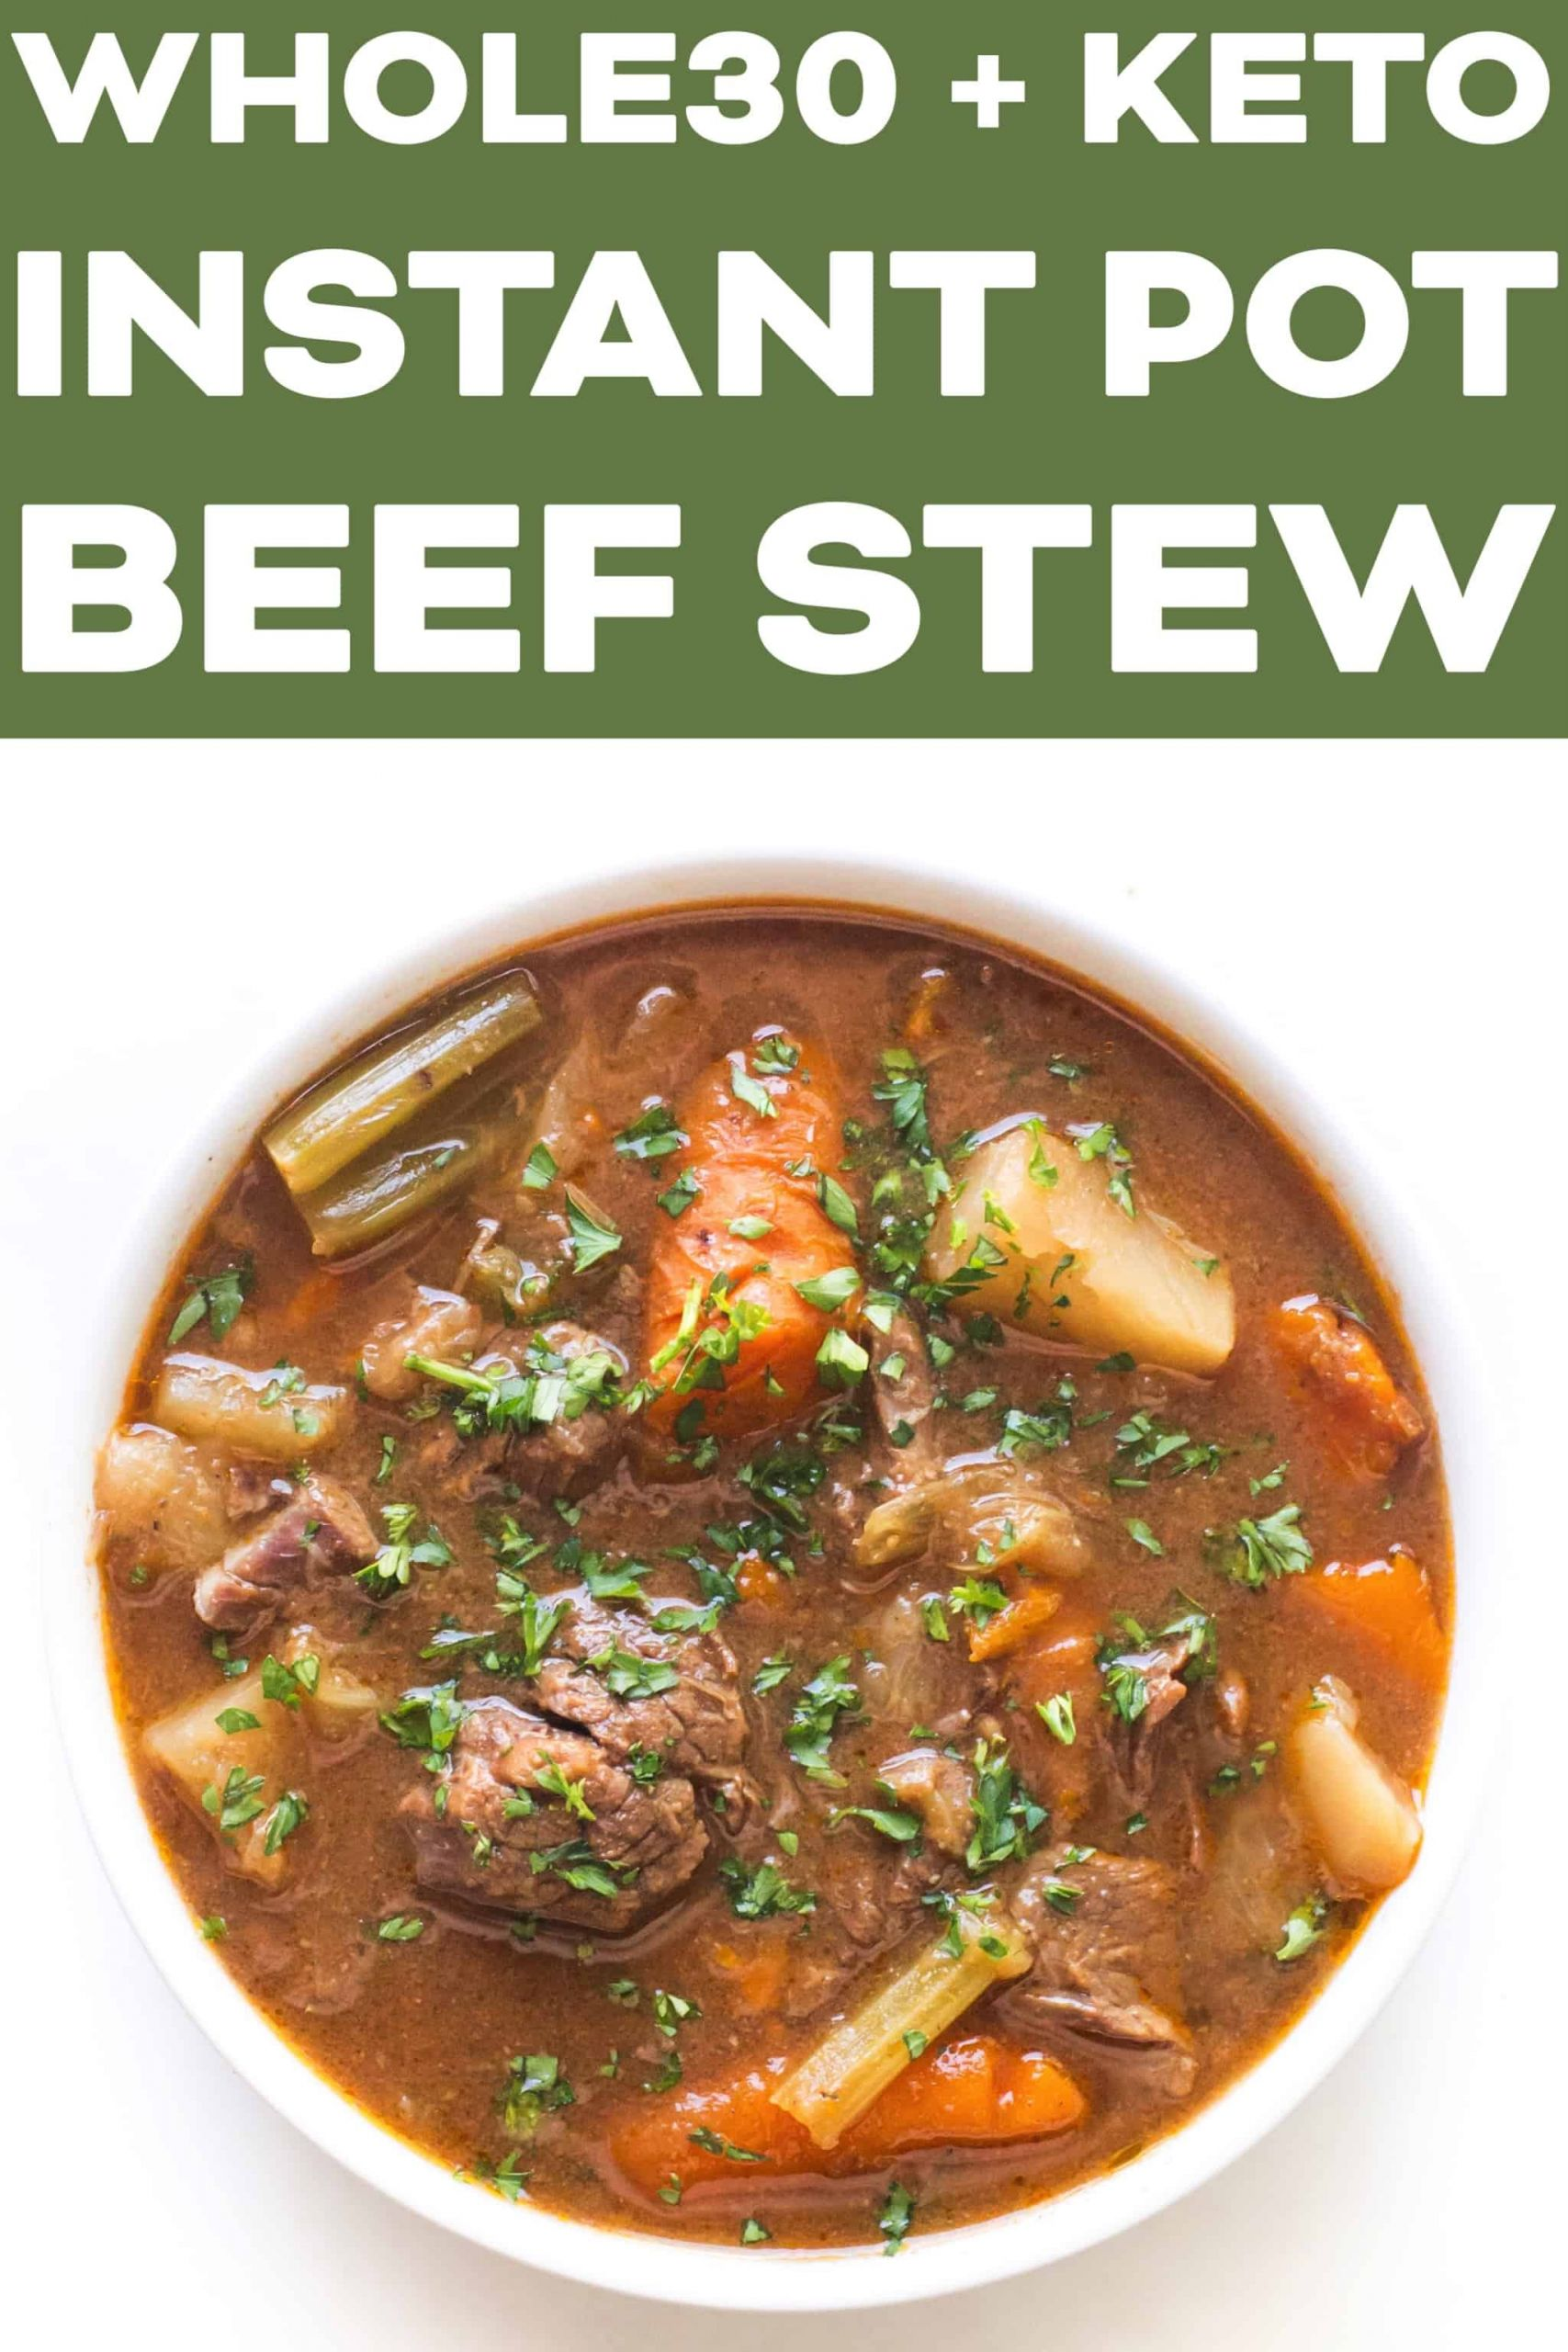 Beef Stew Meat Recipes Instant Pot Keto  Whole30 Keto Instant Pot Beef Stew Tastes Lovely